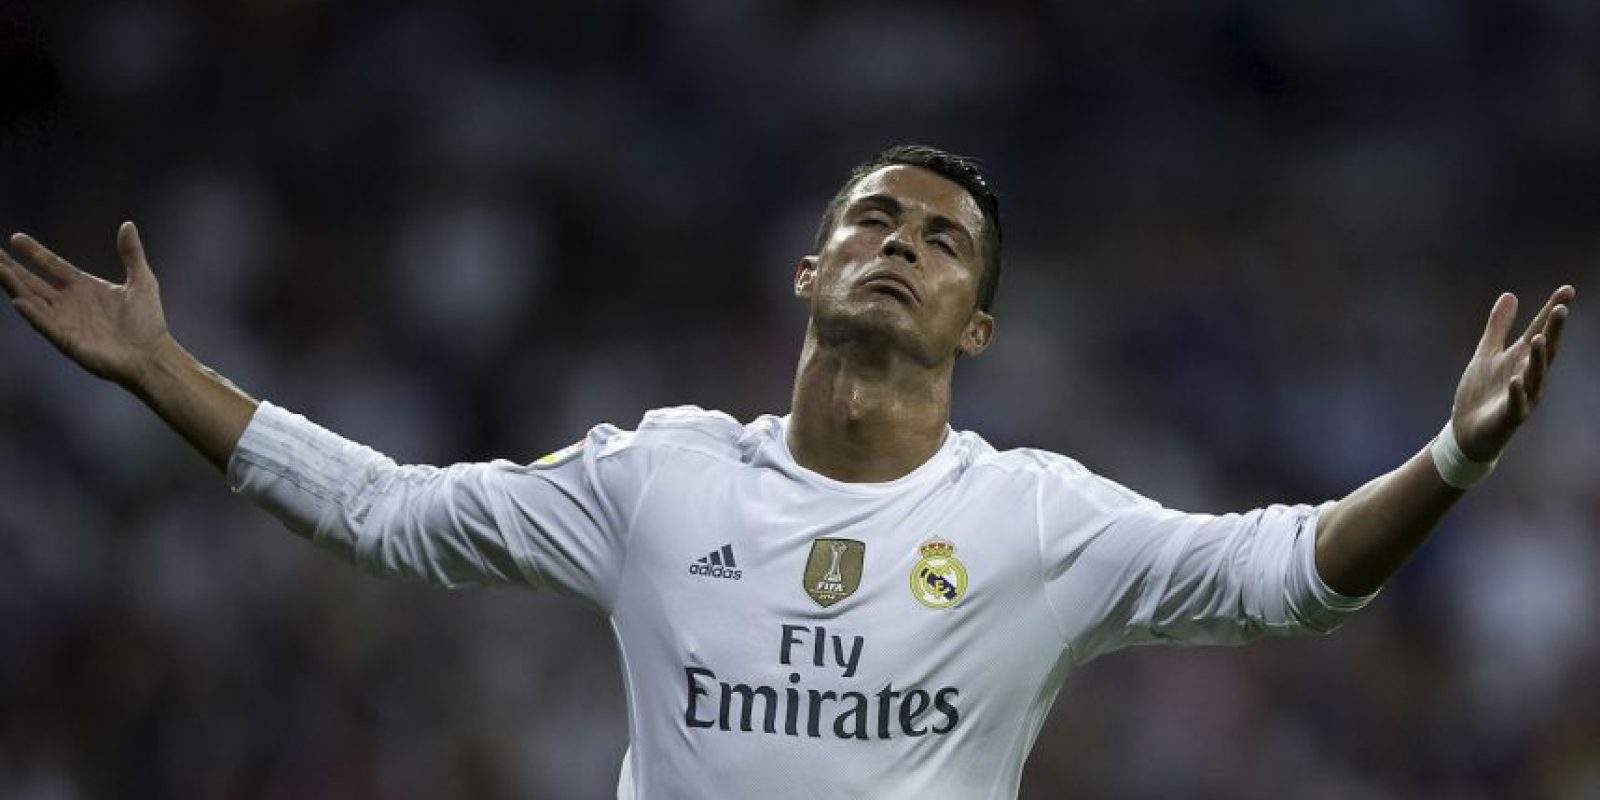 1. Cristiano Ronaldo Foto: Getty Images